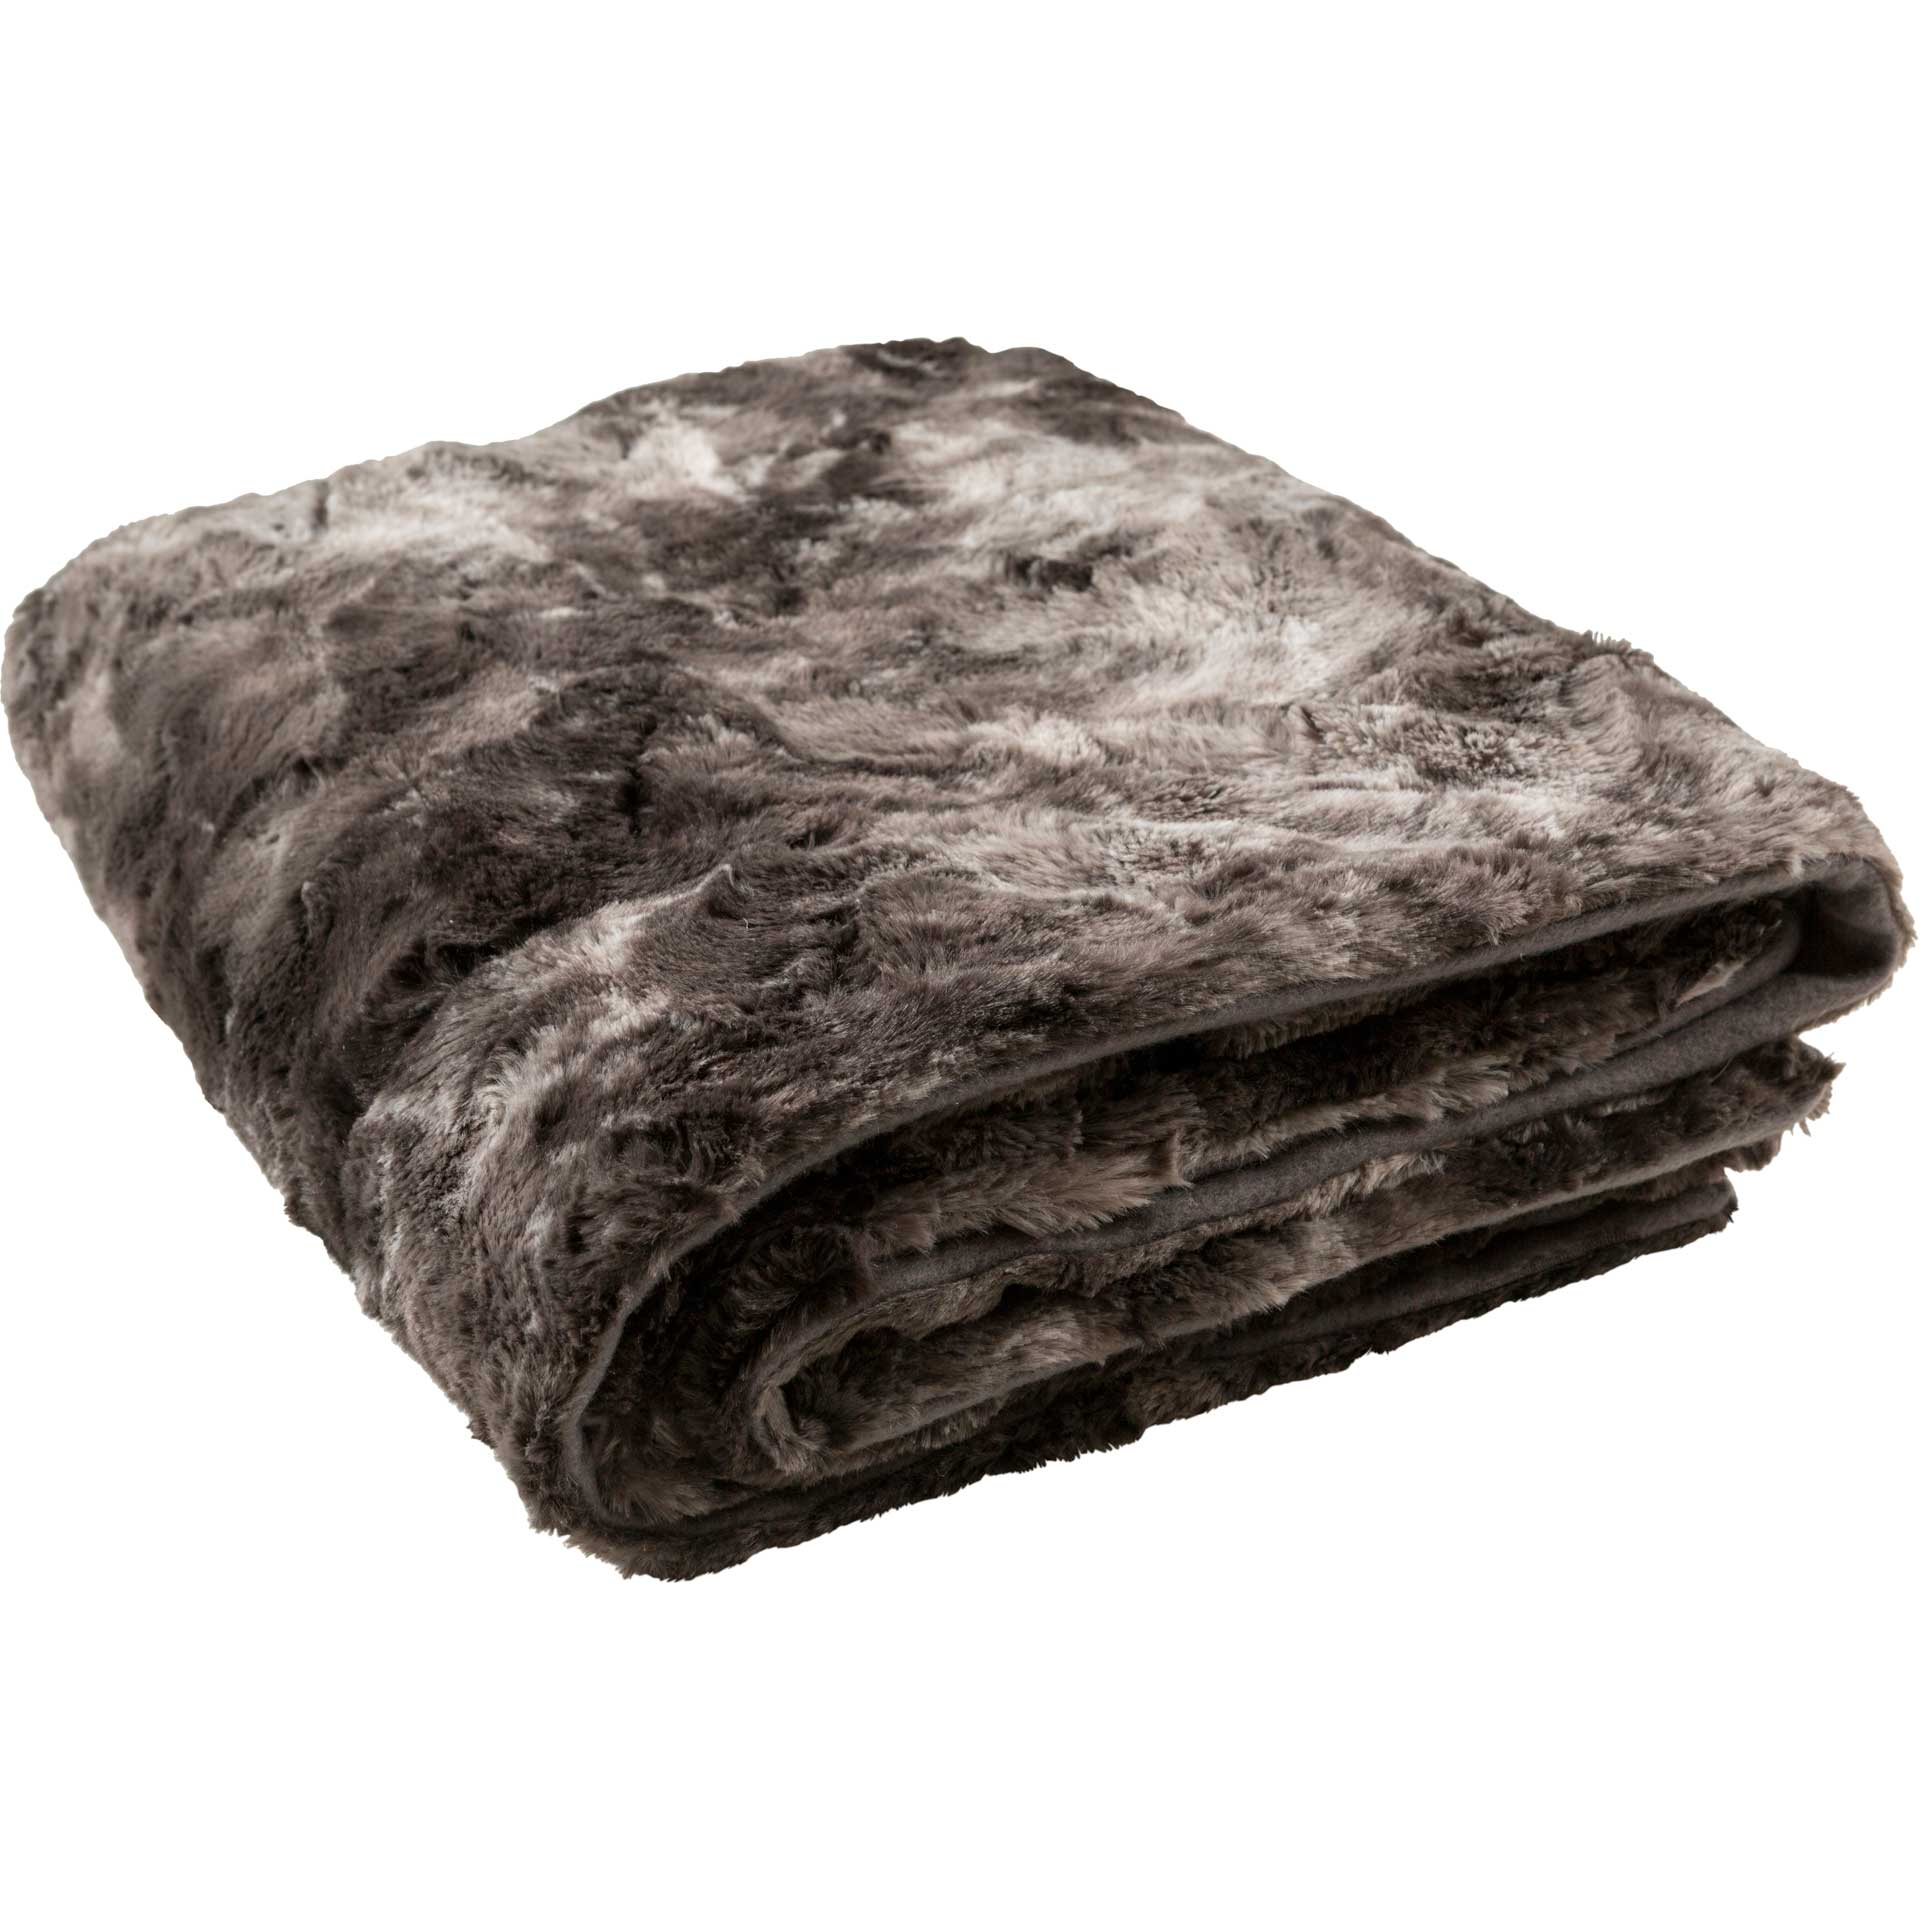 Felina Charcoal Throw